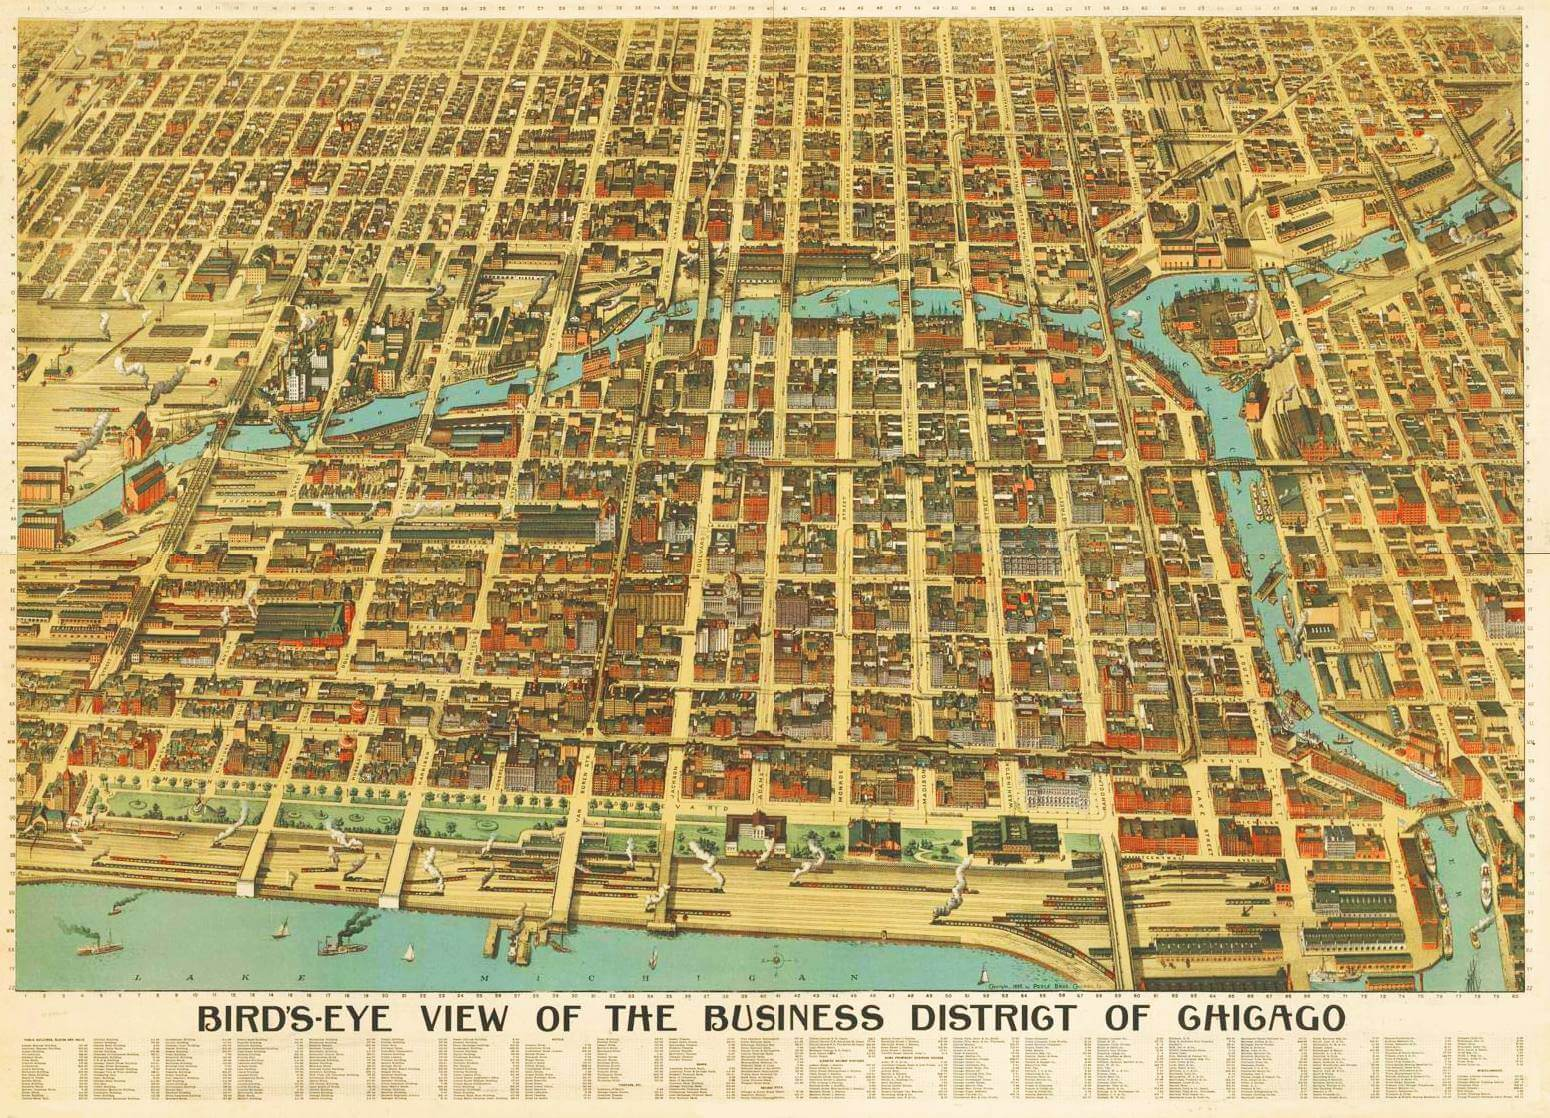 An early 20th century map of the Chicago business district.